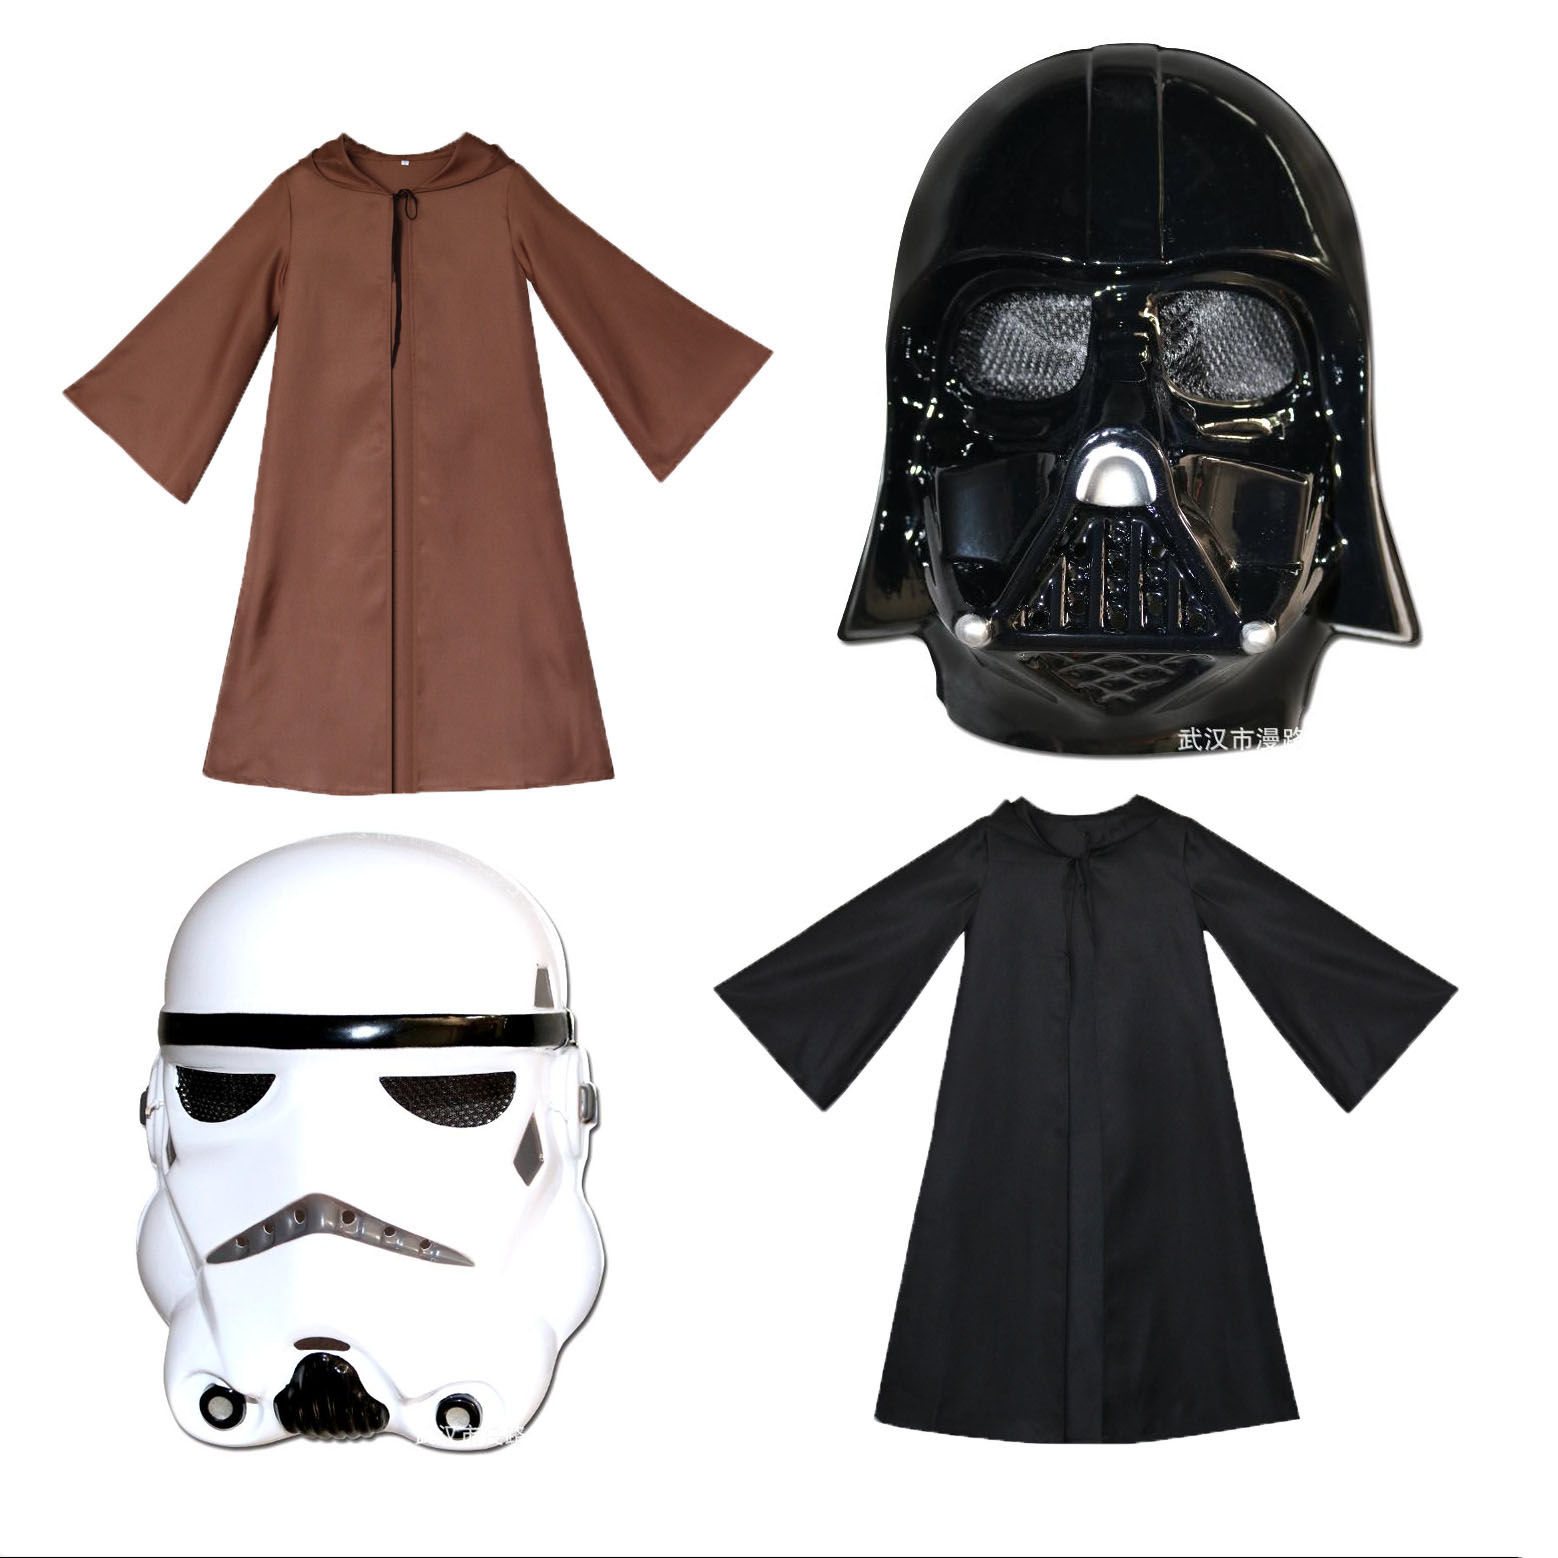 S-XXL Knight Hooded Cloak Jedi Sith Robe Cape Party Costume Dress Prop Cosplay